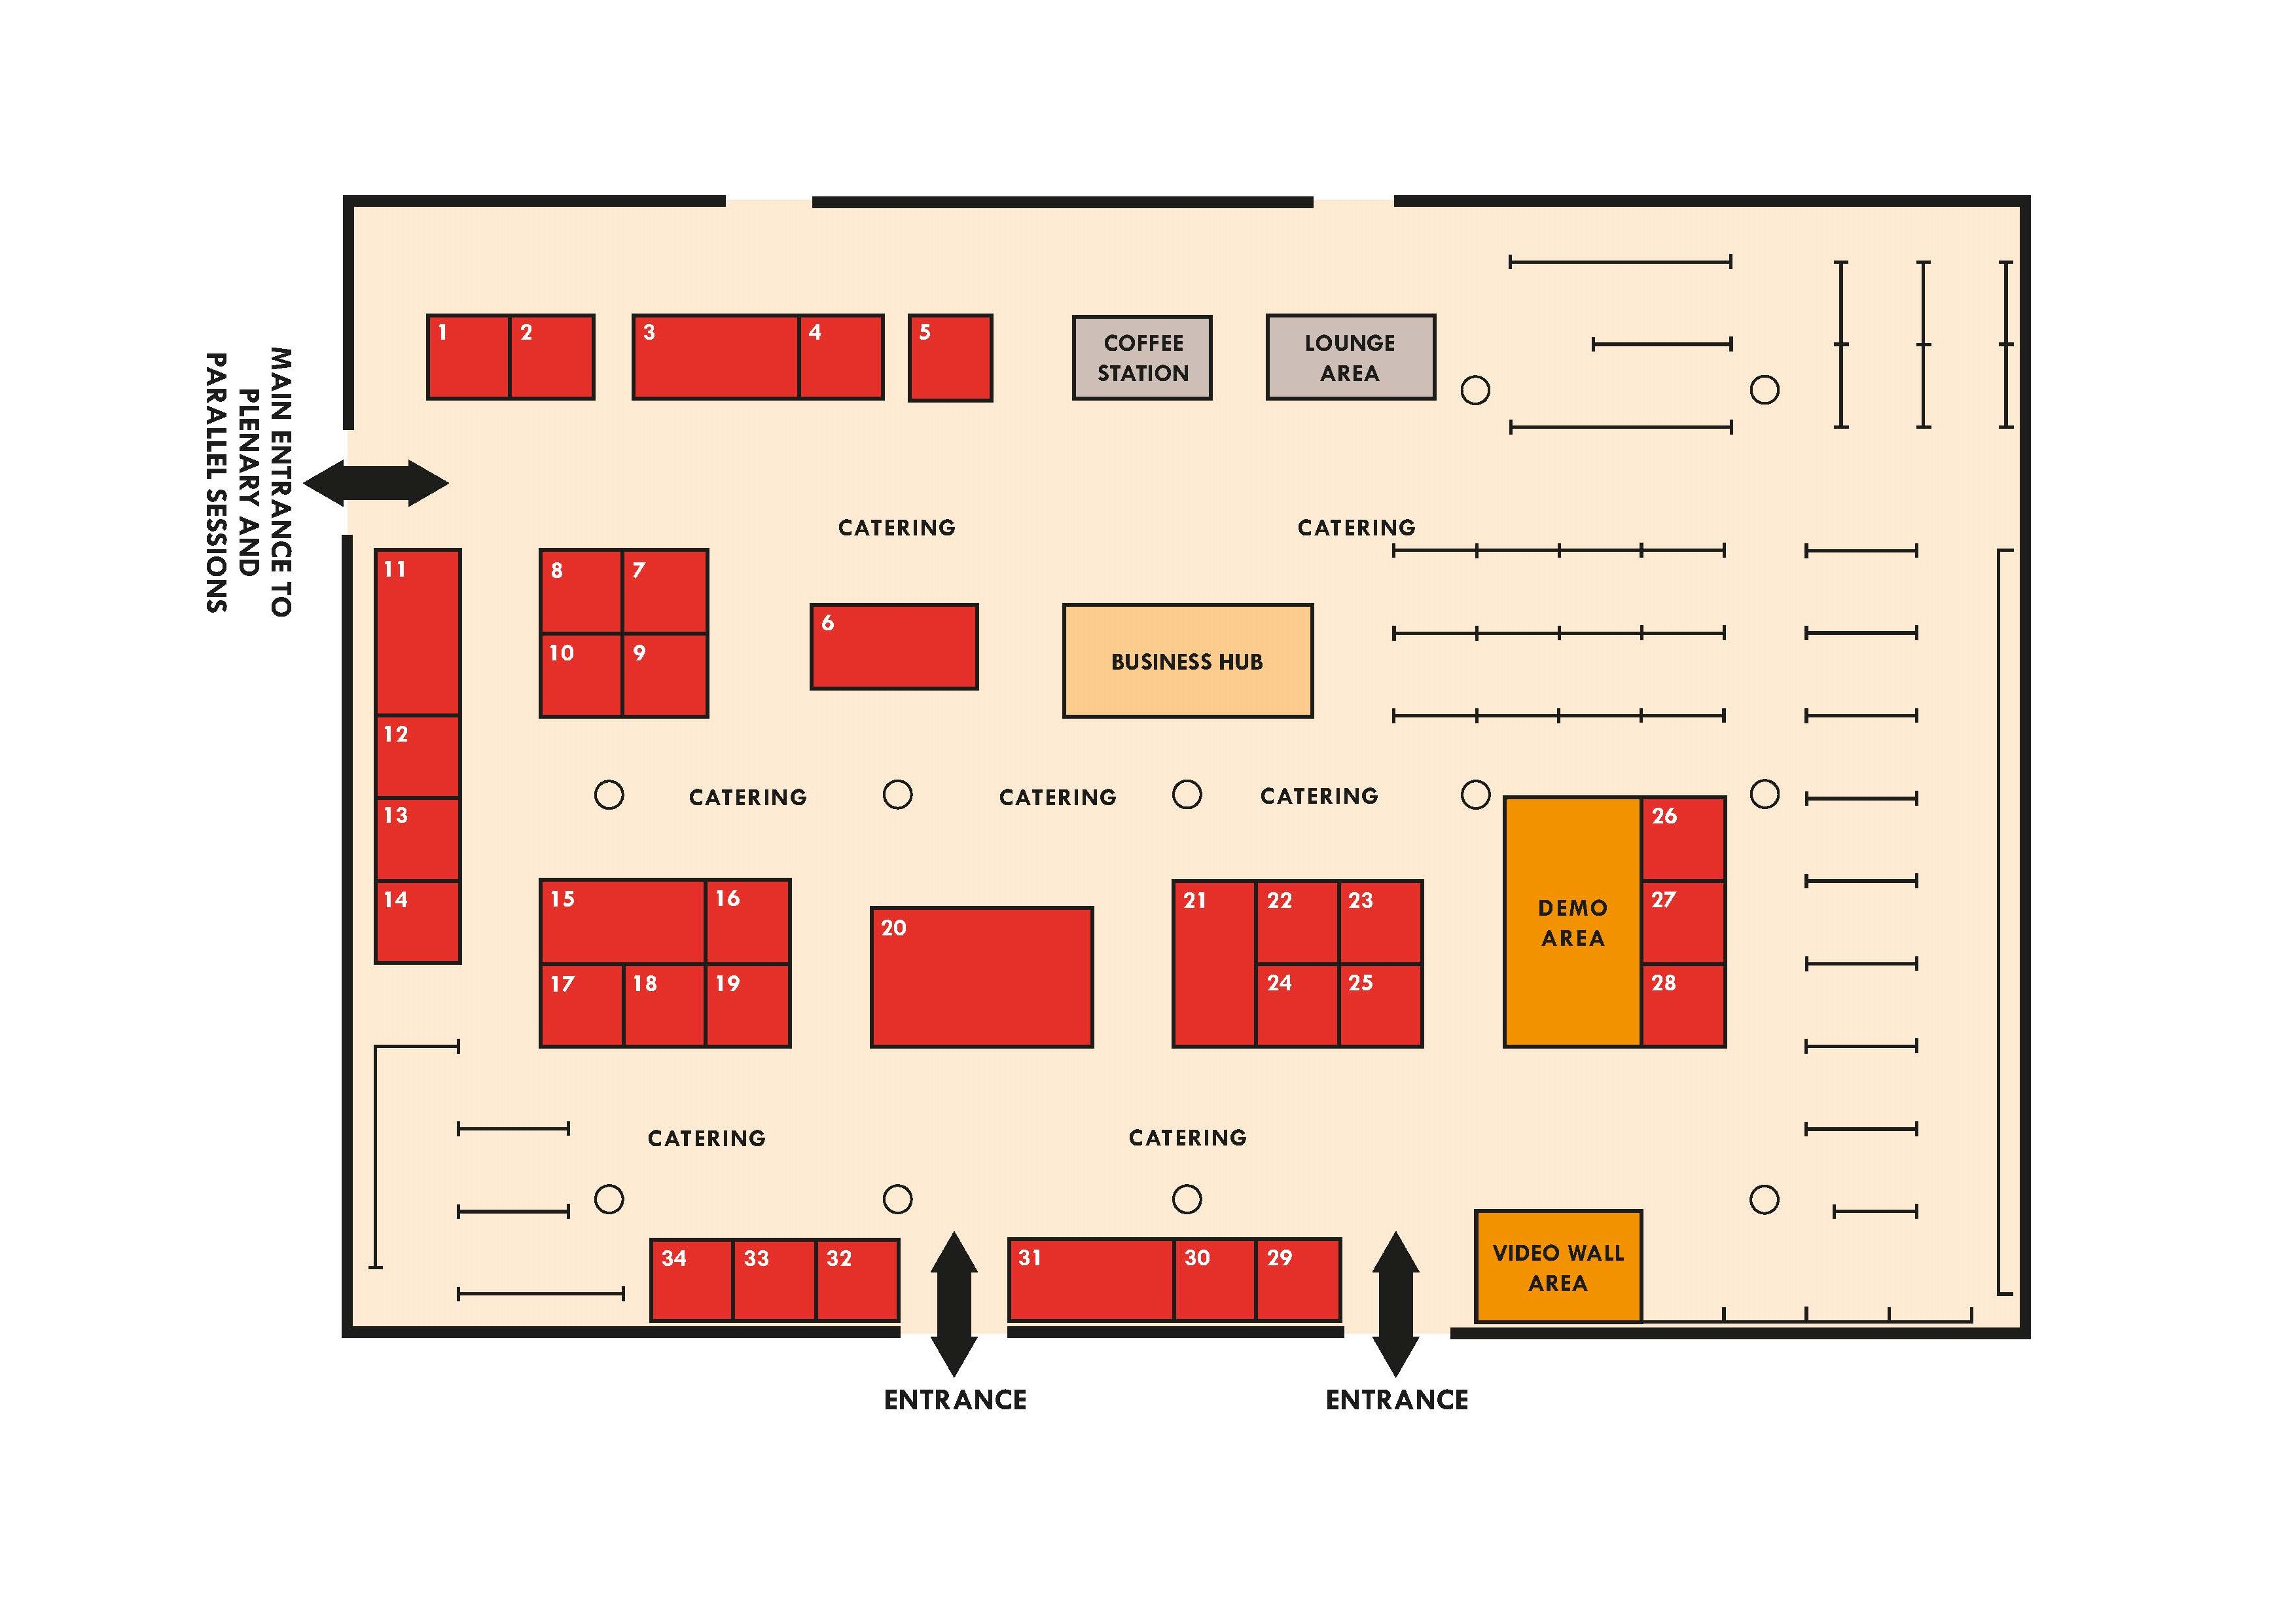 ISCoS 2018 NEW Floor Plan 15 06 2018 rotated